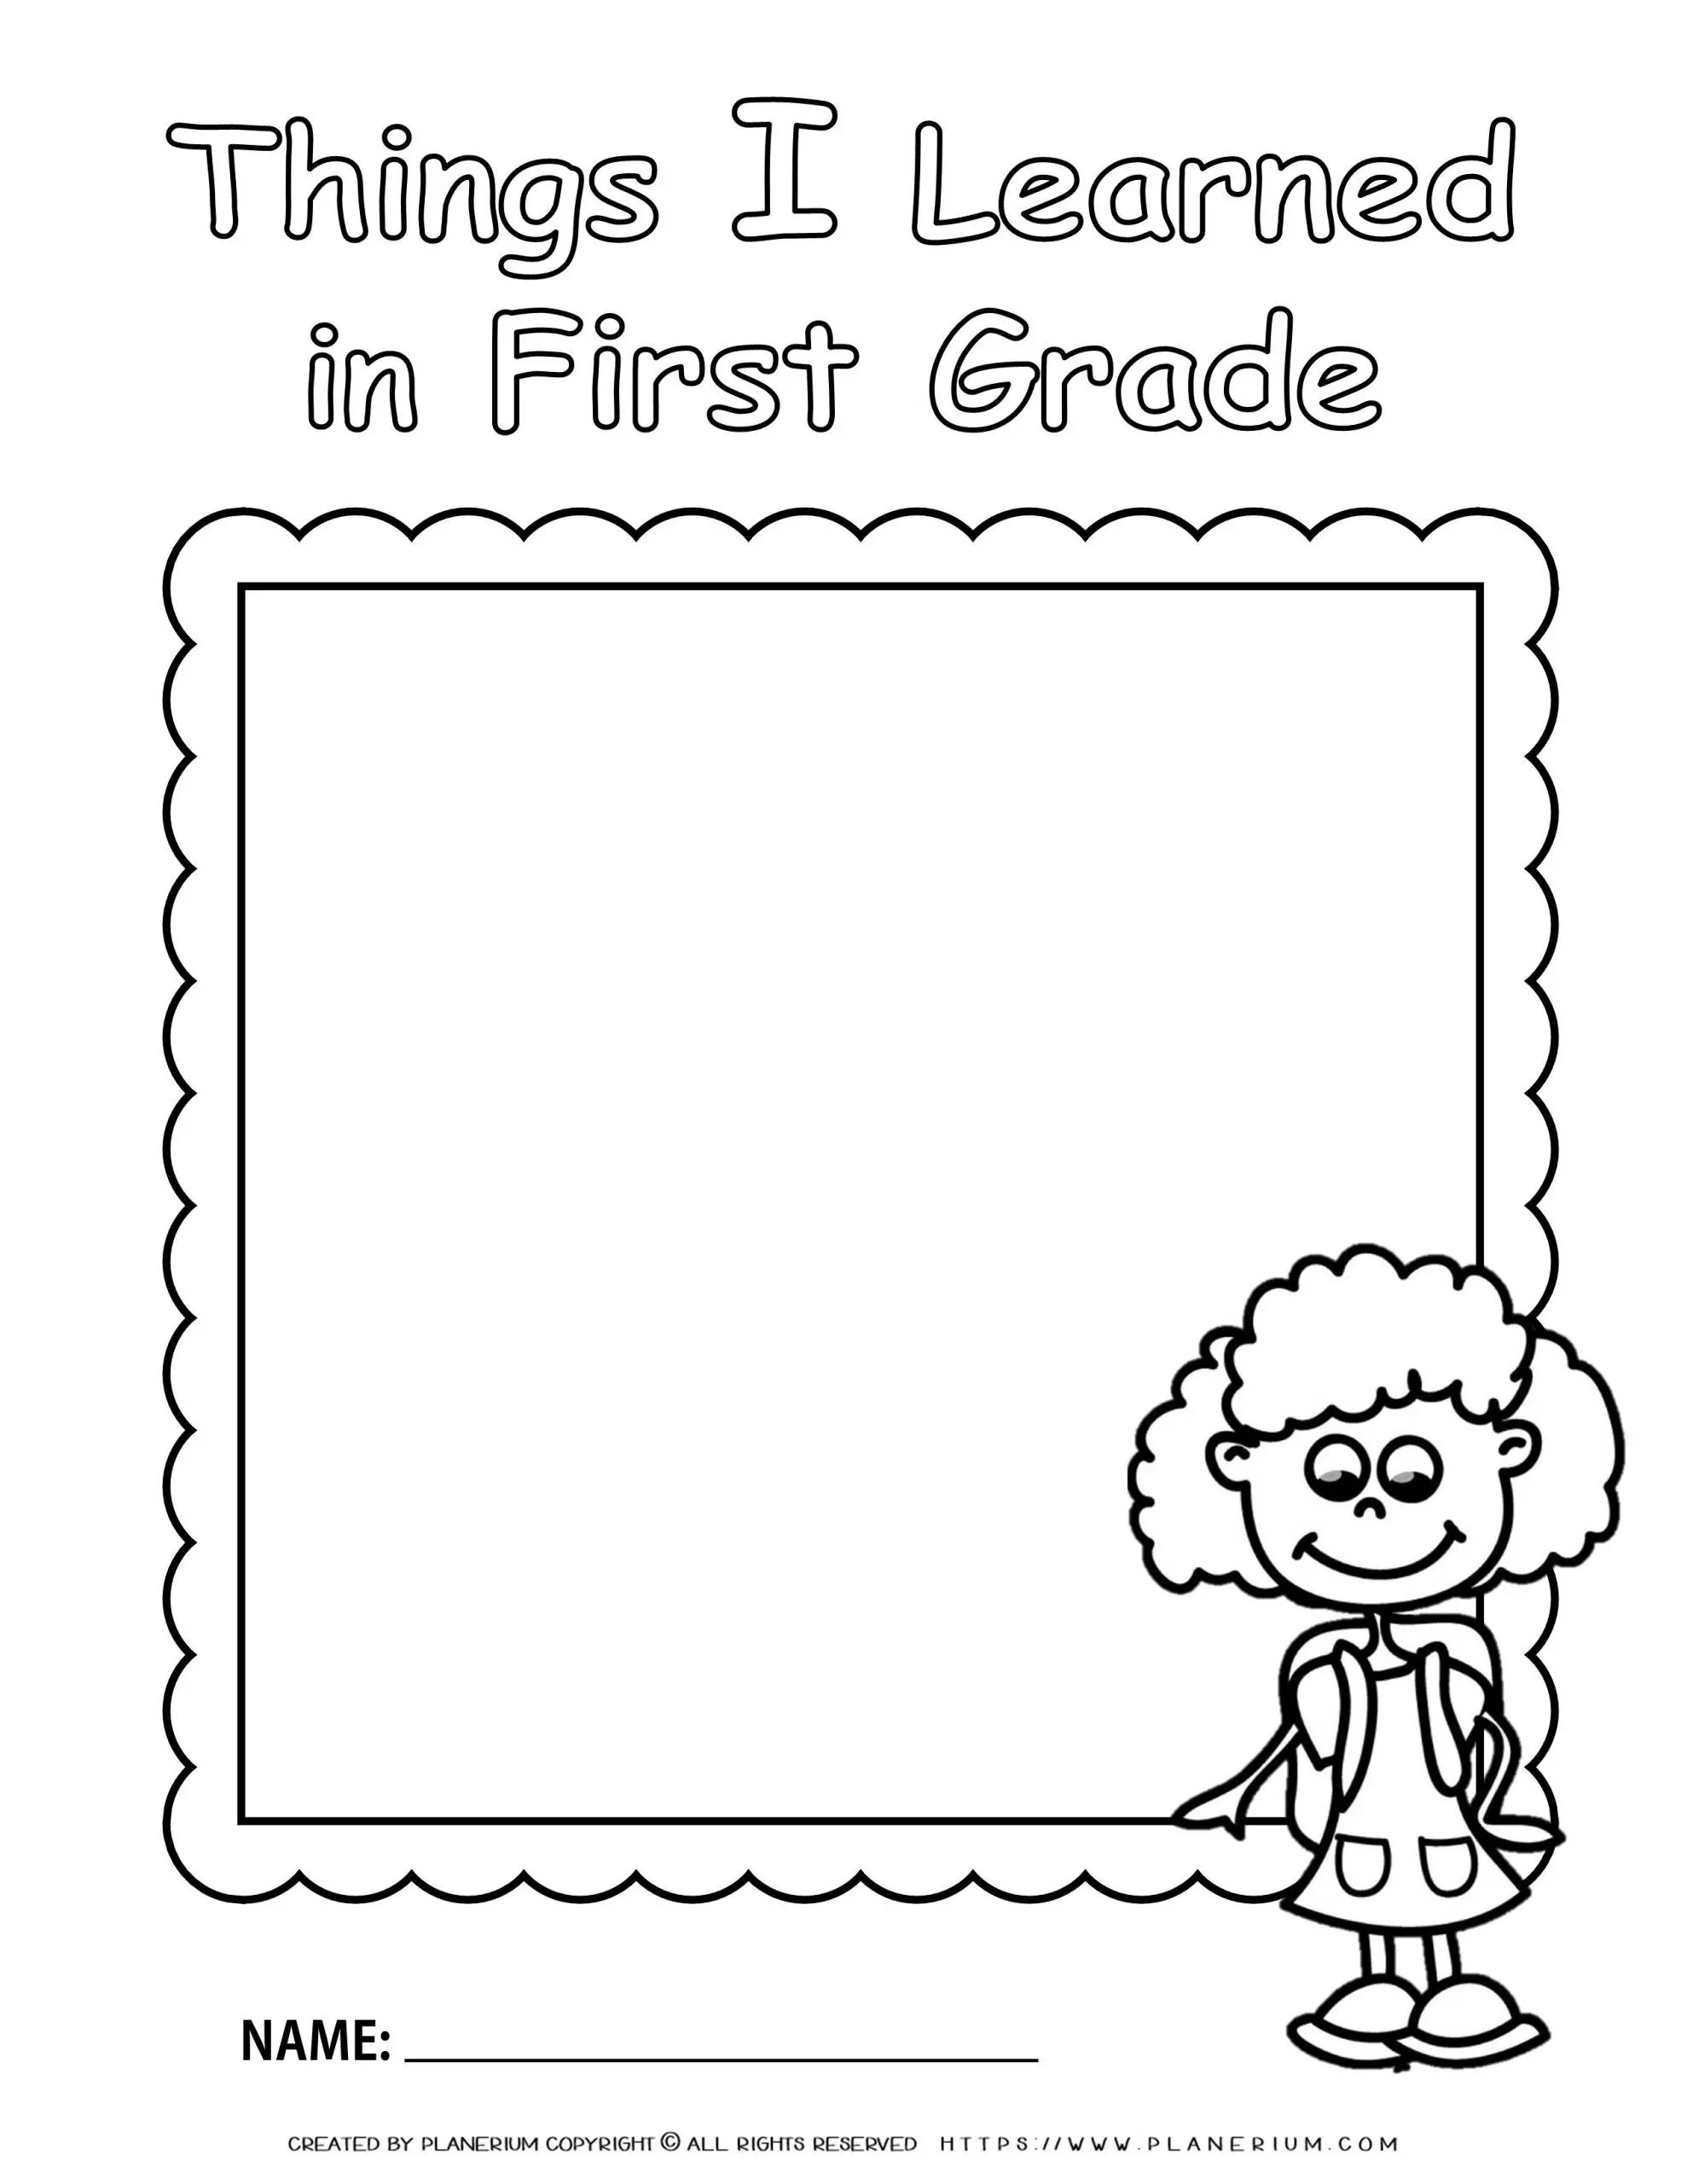 hight resolution of End of Year - Worksheet - First grade Review for Girl   Planerium